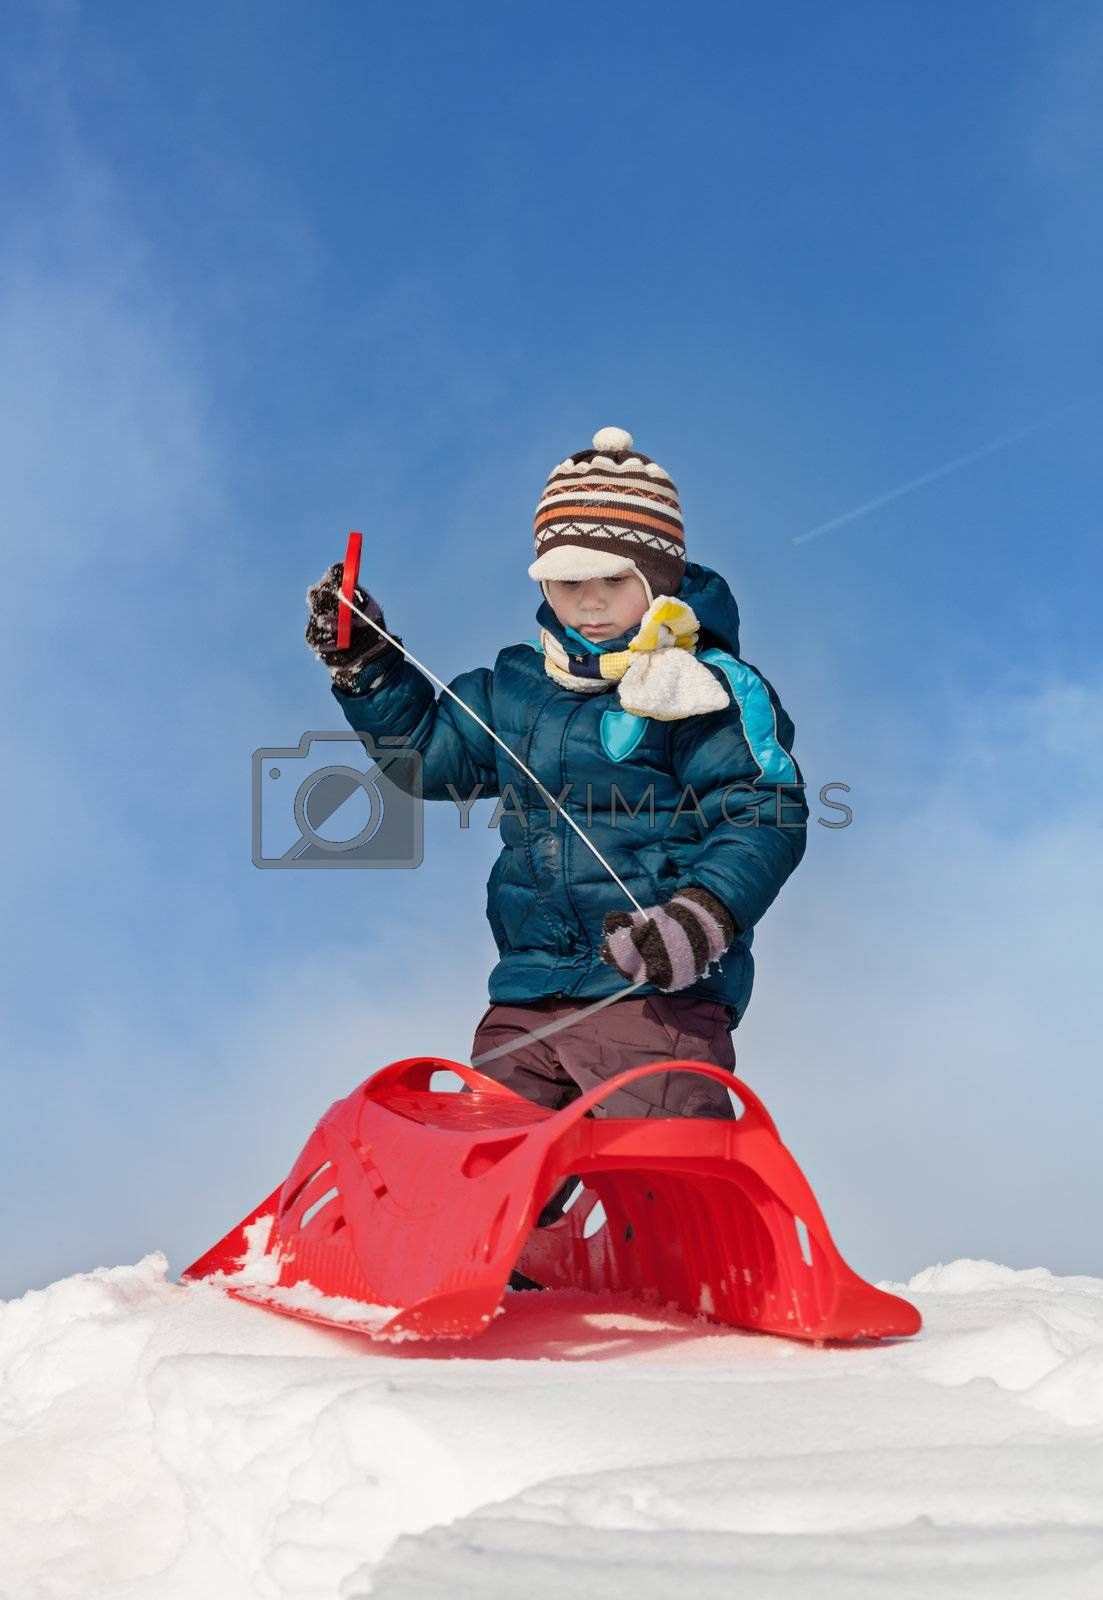 Boy preparing for a ride with red plastic sleigh on a snowy hill in sunny winter day